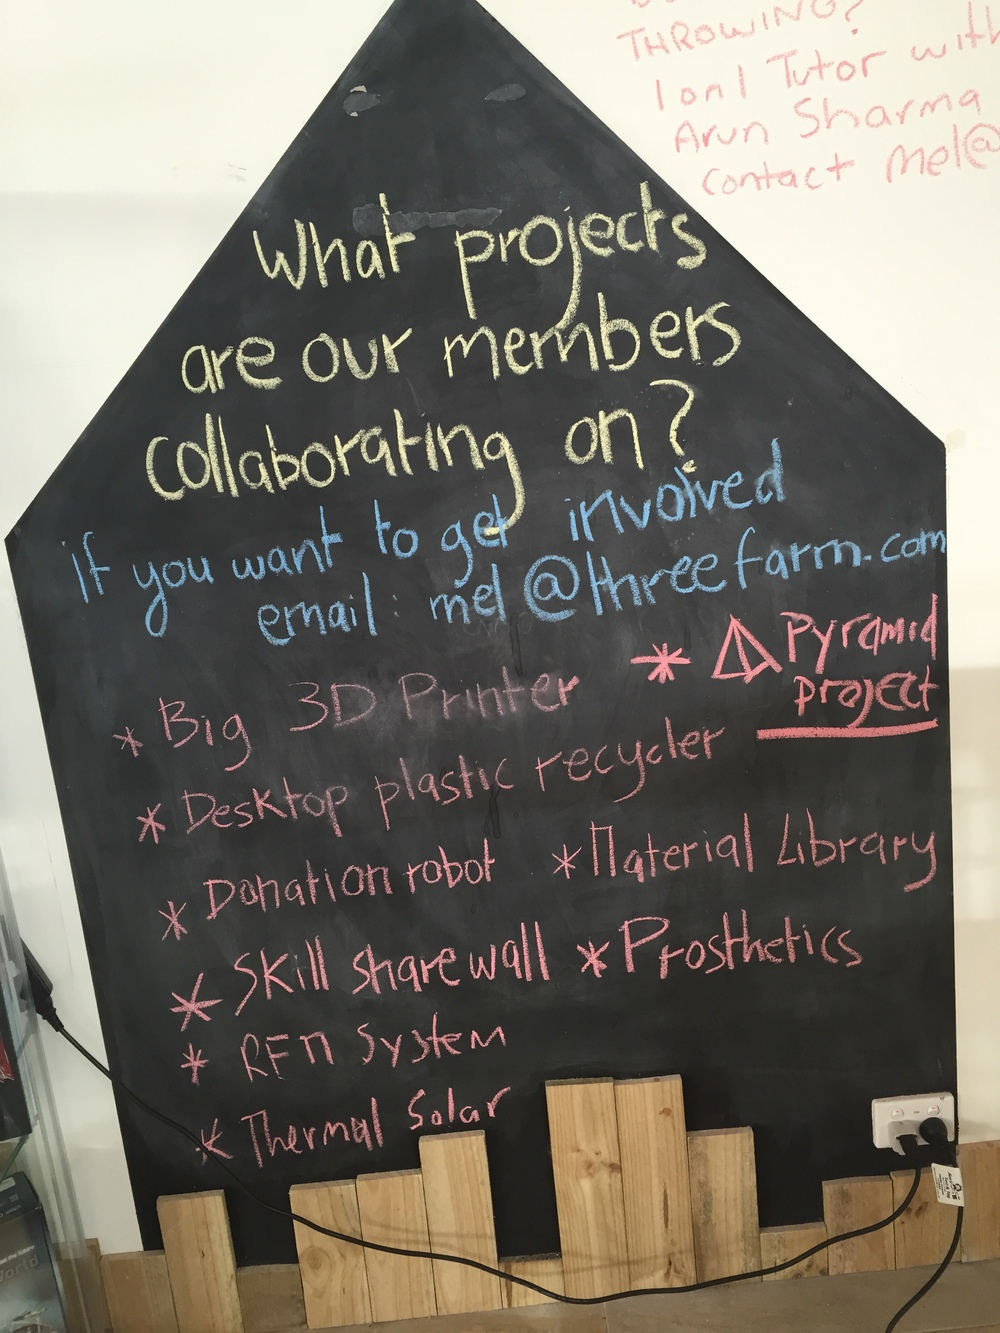 The project wall - this is where members find groups to join in with to learn and create collaboratively